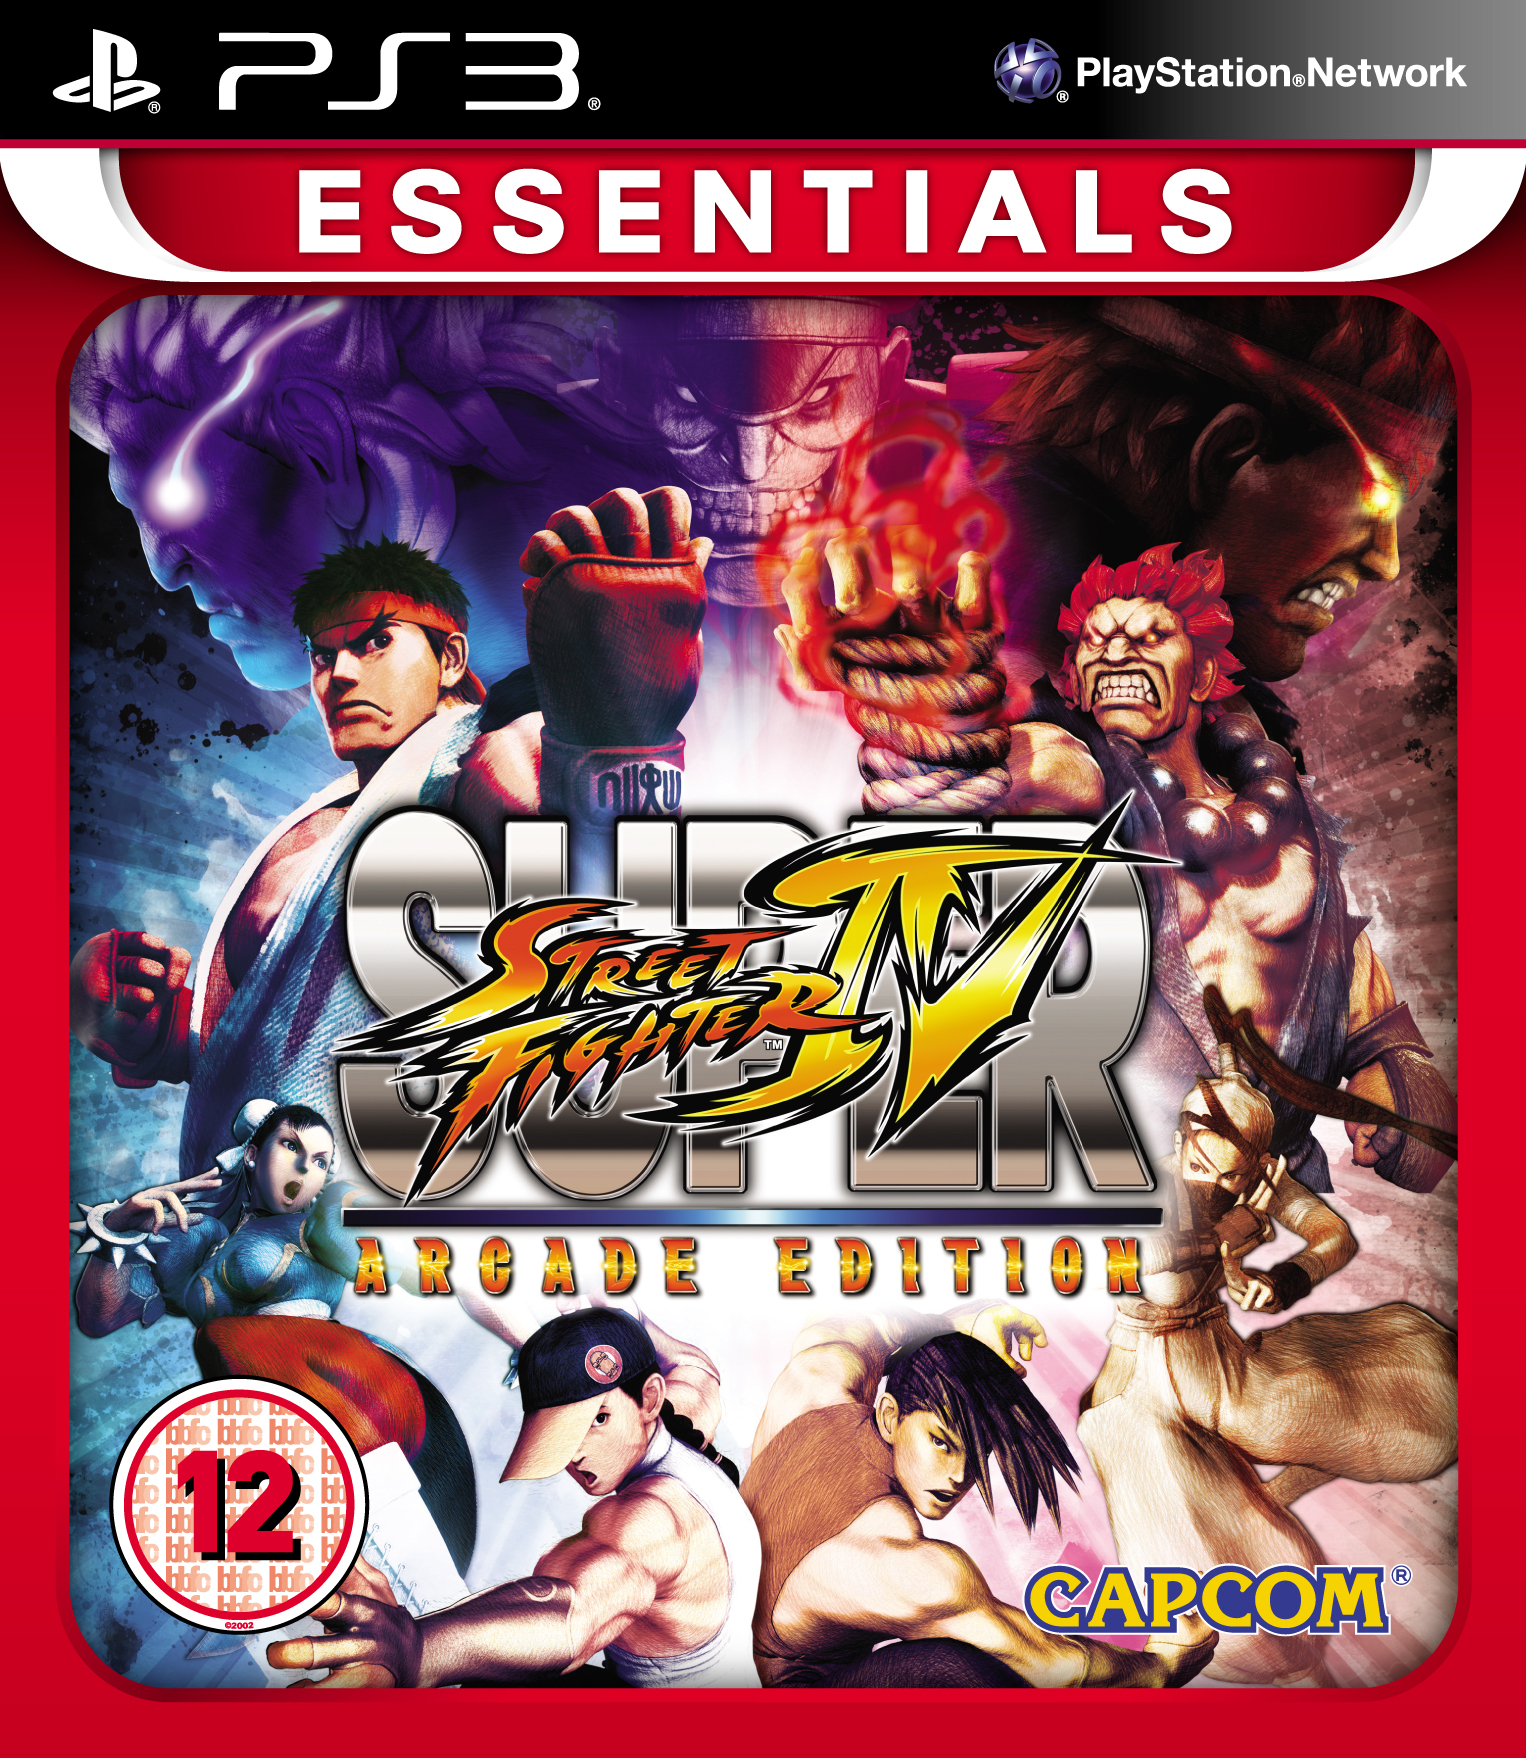 Super Street Fighter Arcade Edition - PS3